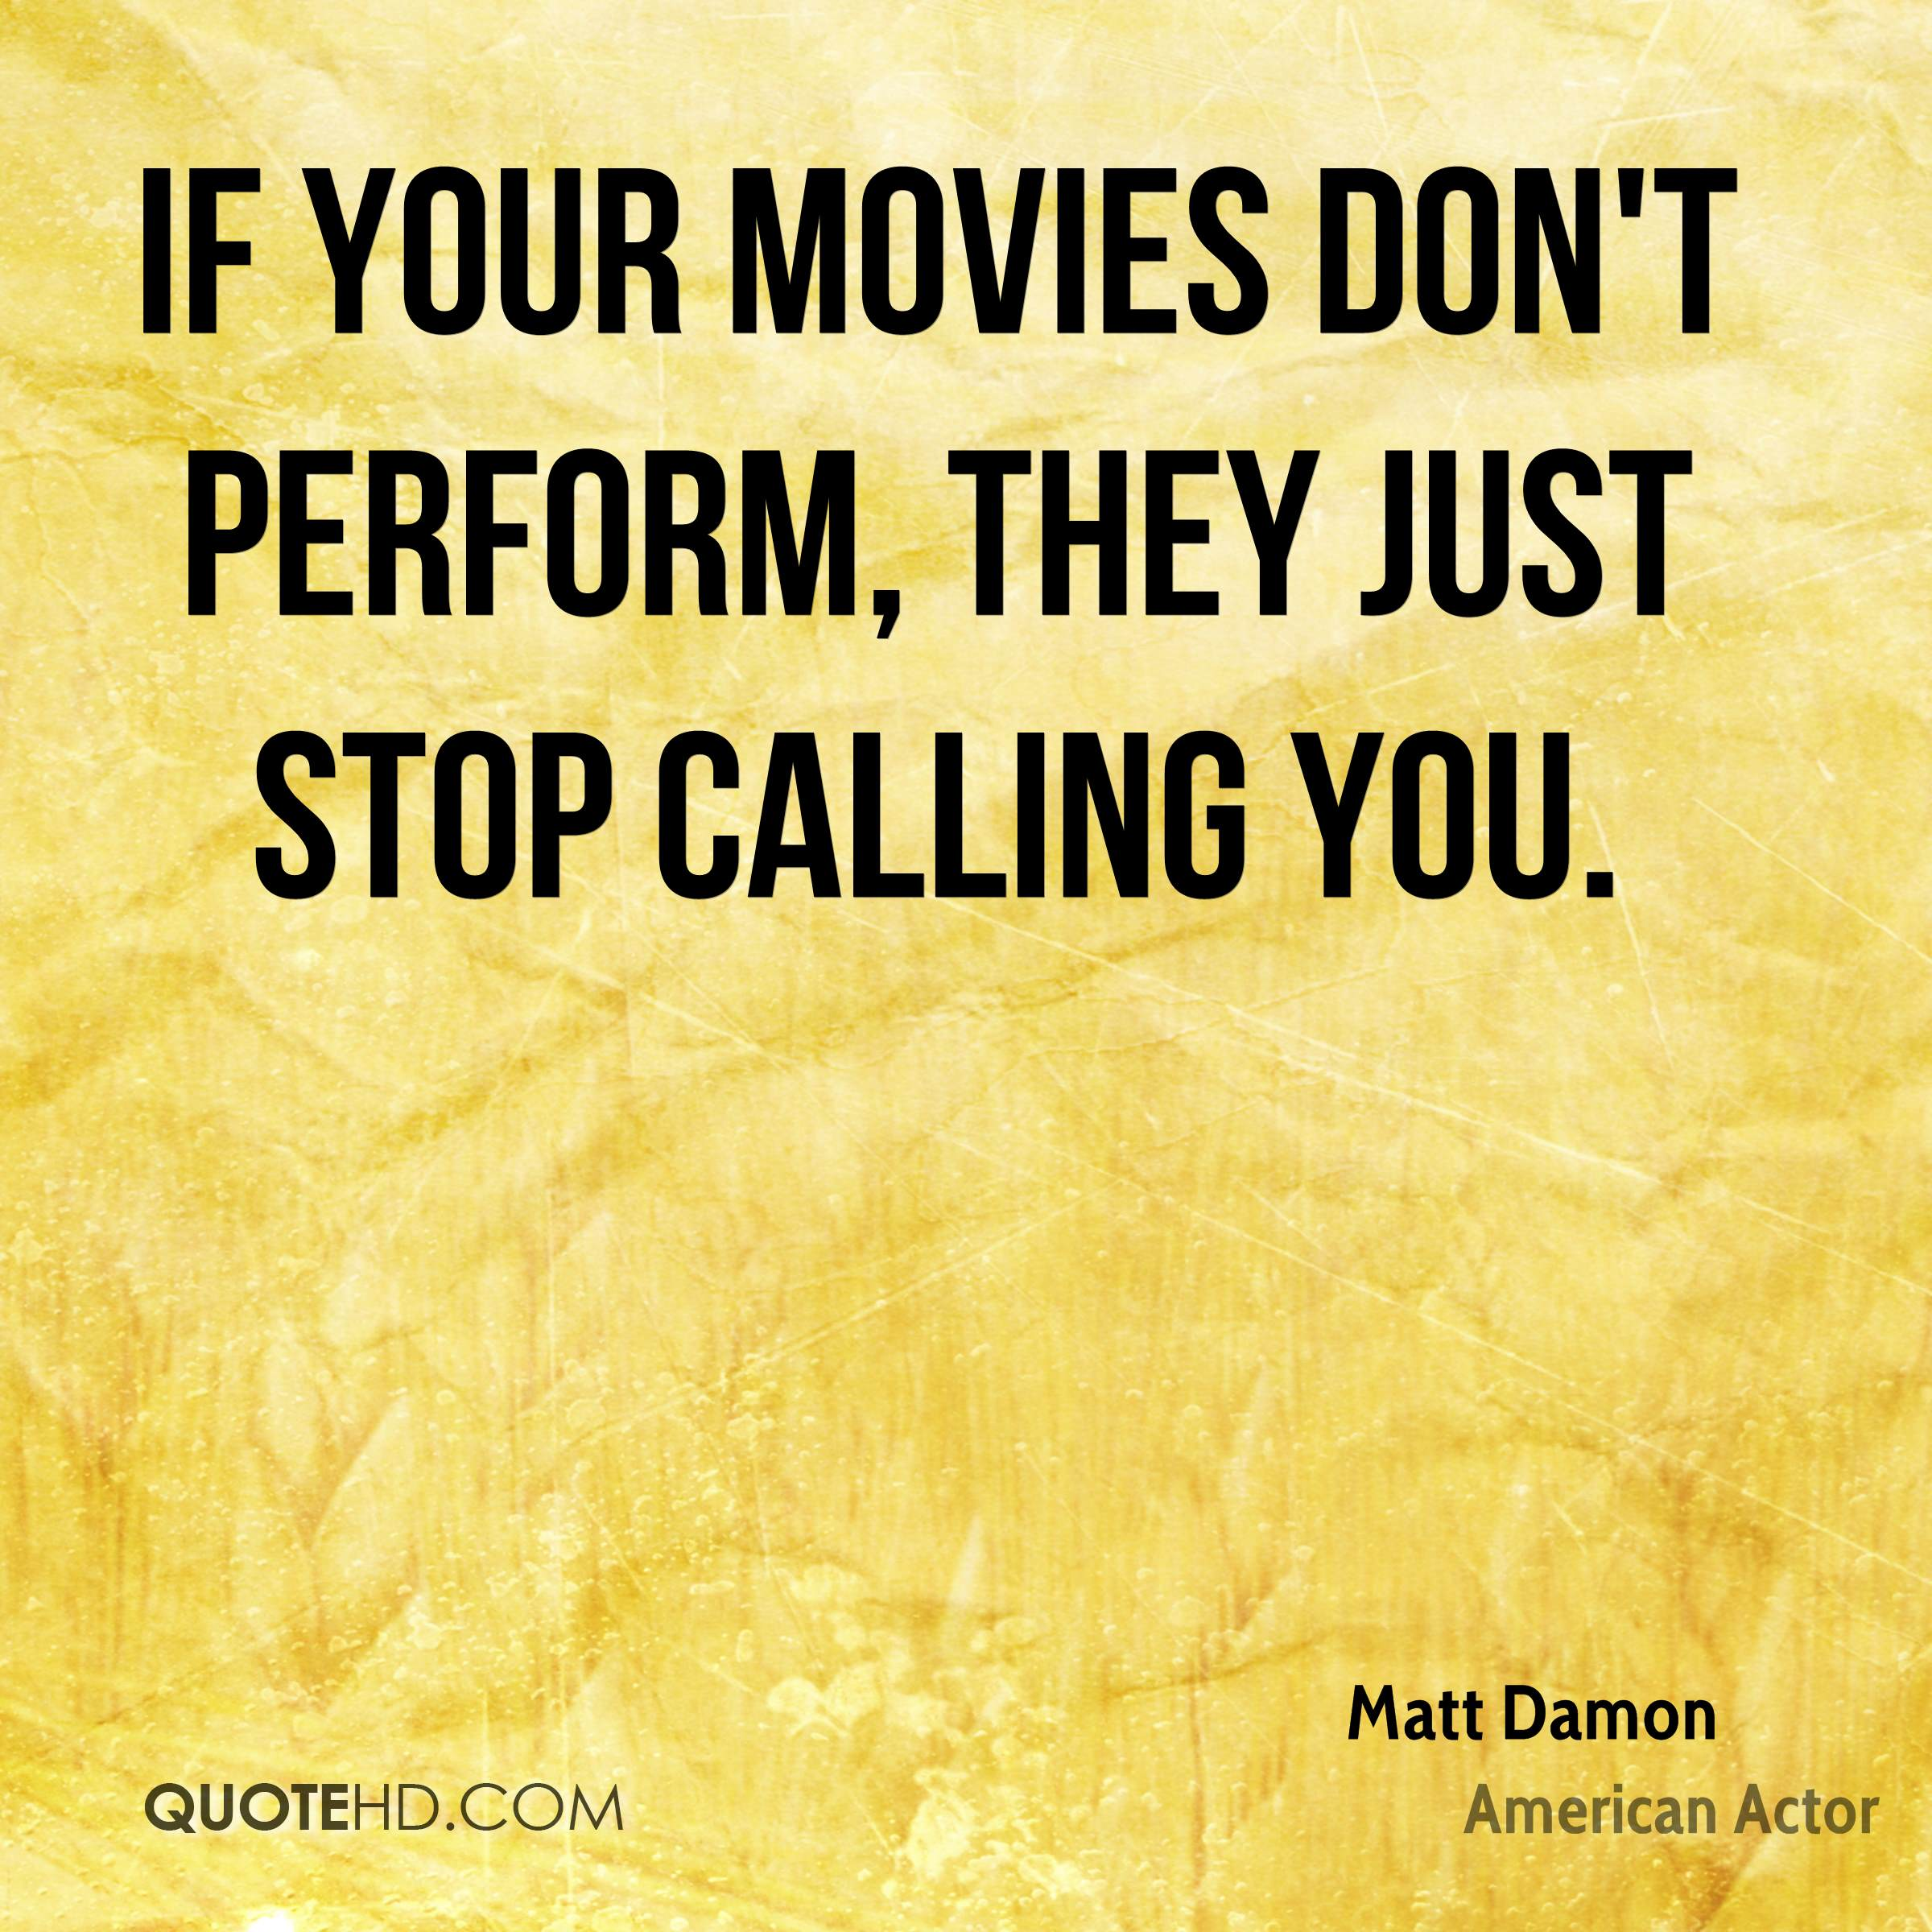 If your movies don't perform, they just stop calling you.